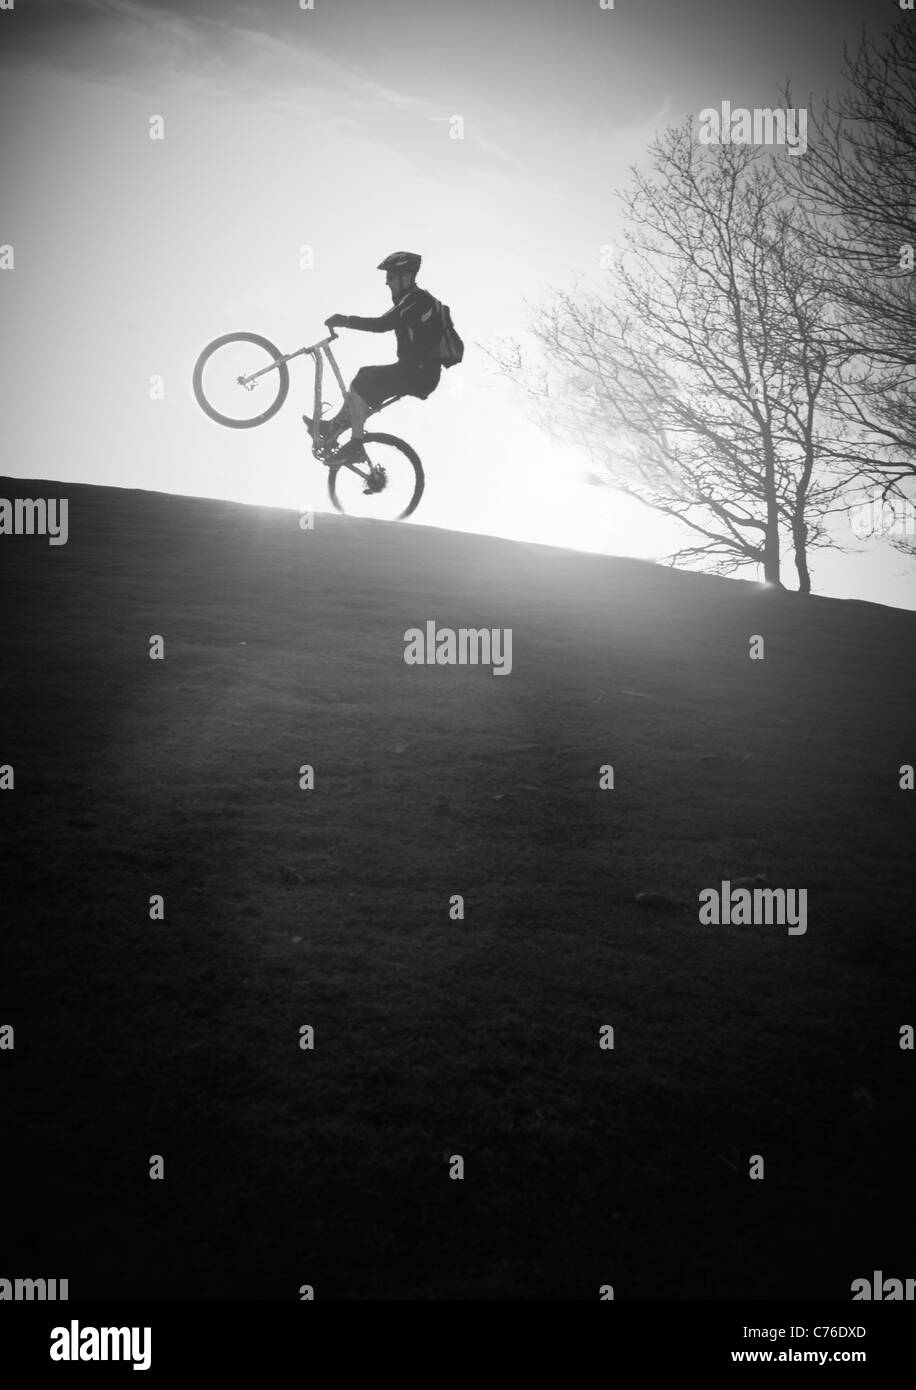 Mountain biker puling a wheelie / manual in sunset black and white - Stock Image